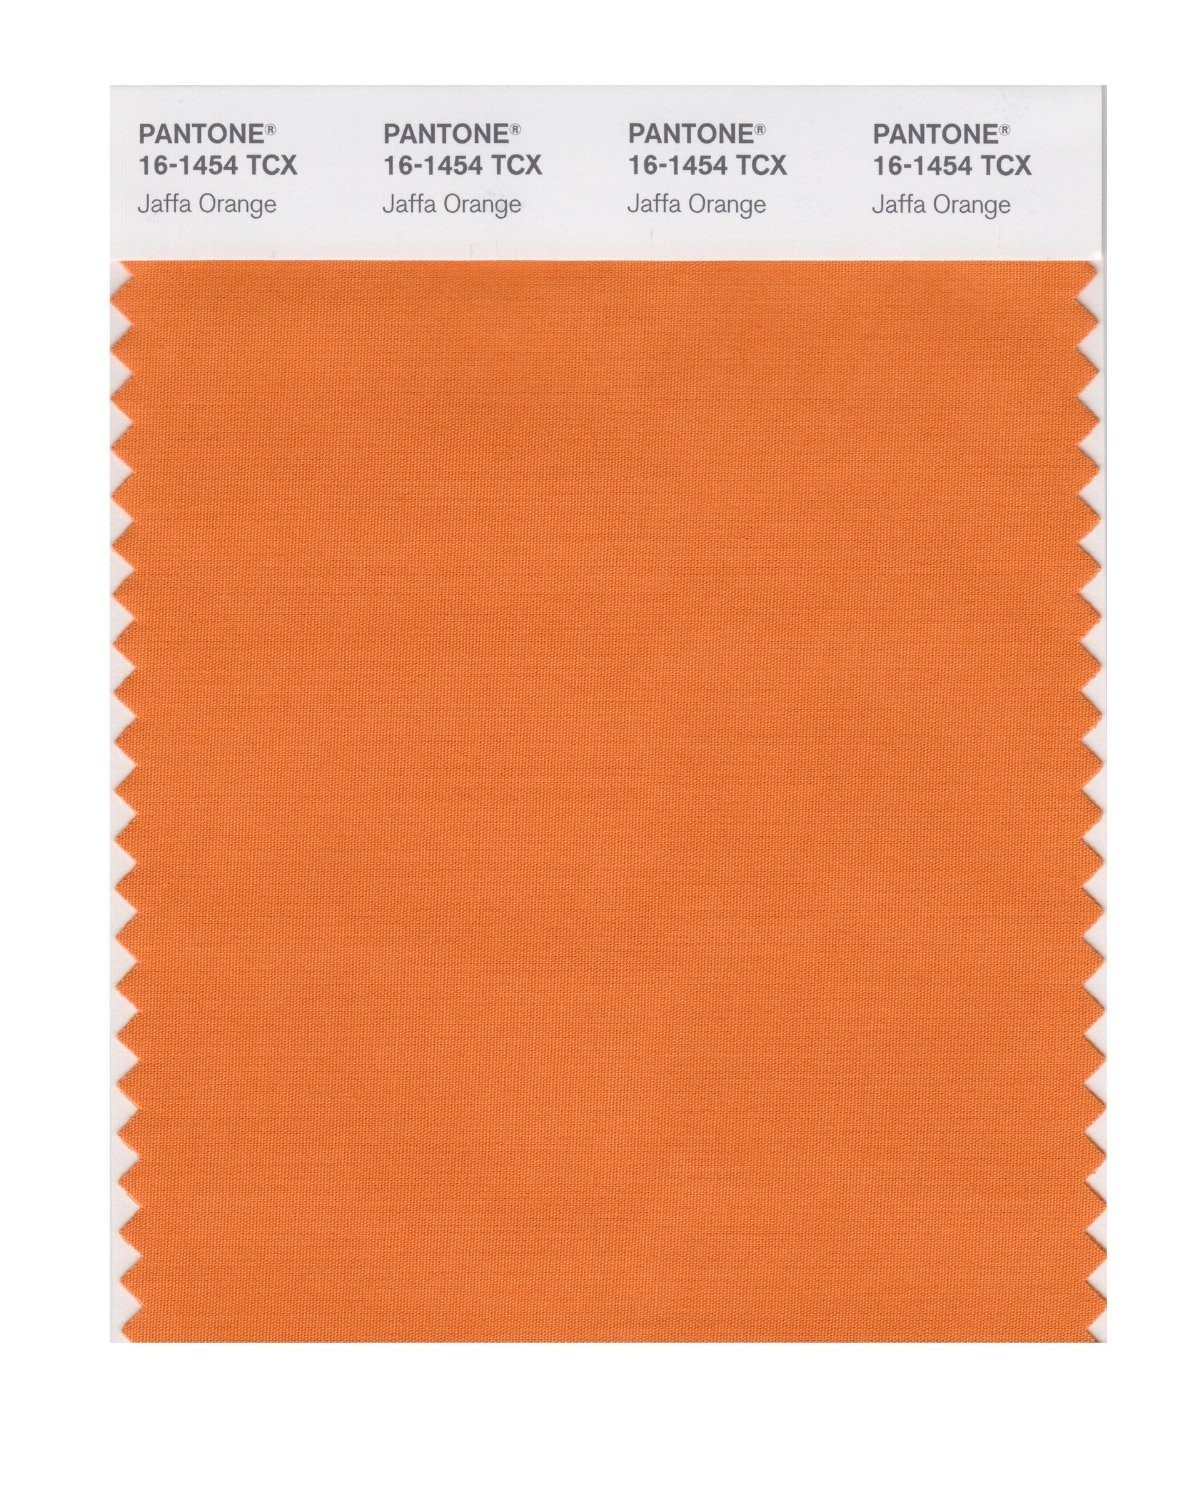 Pantone 16-1454 TCX Swatch Card Jaffa Orange